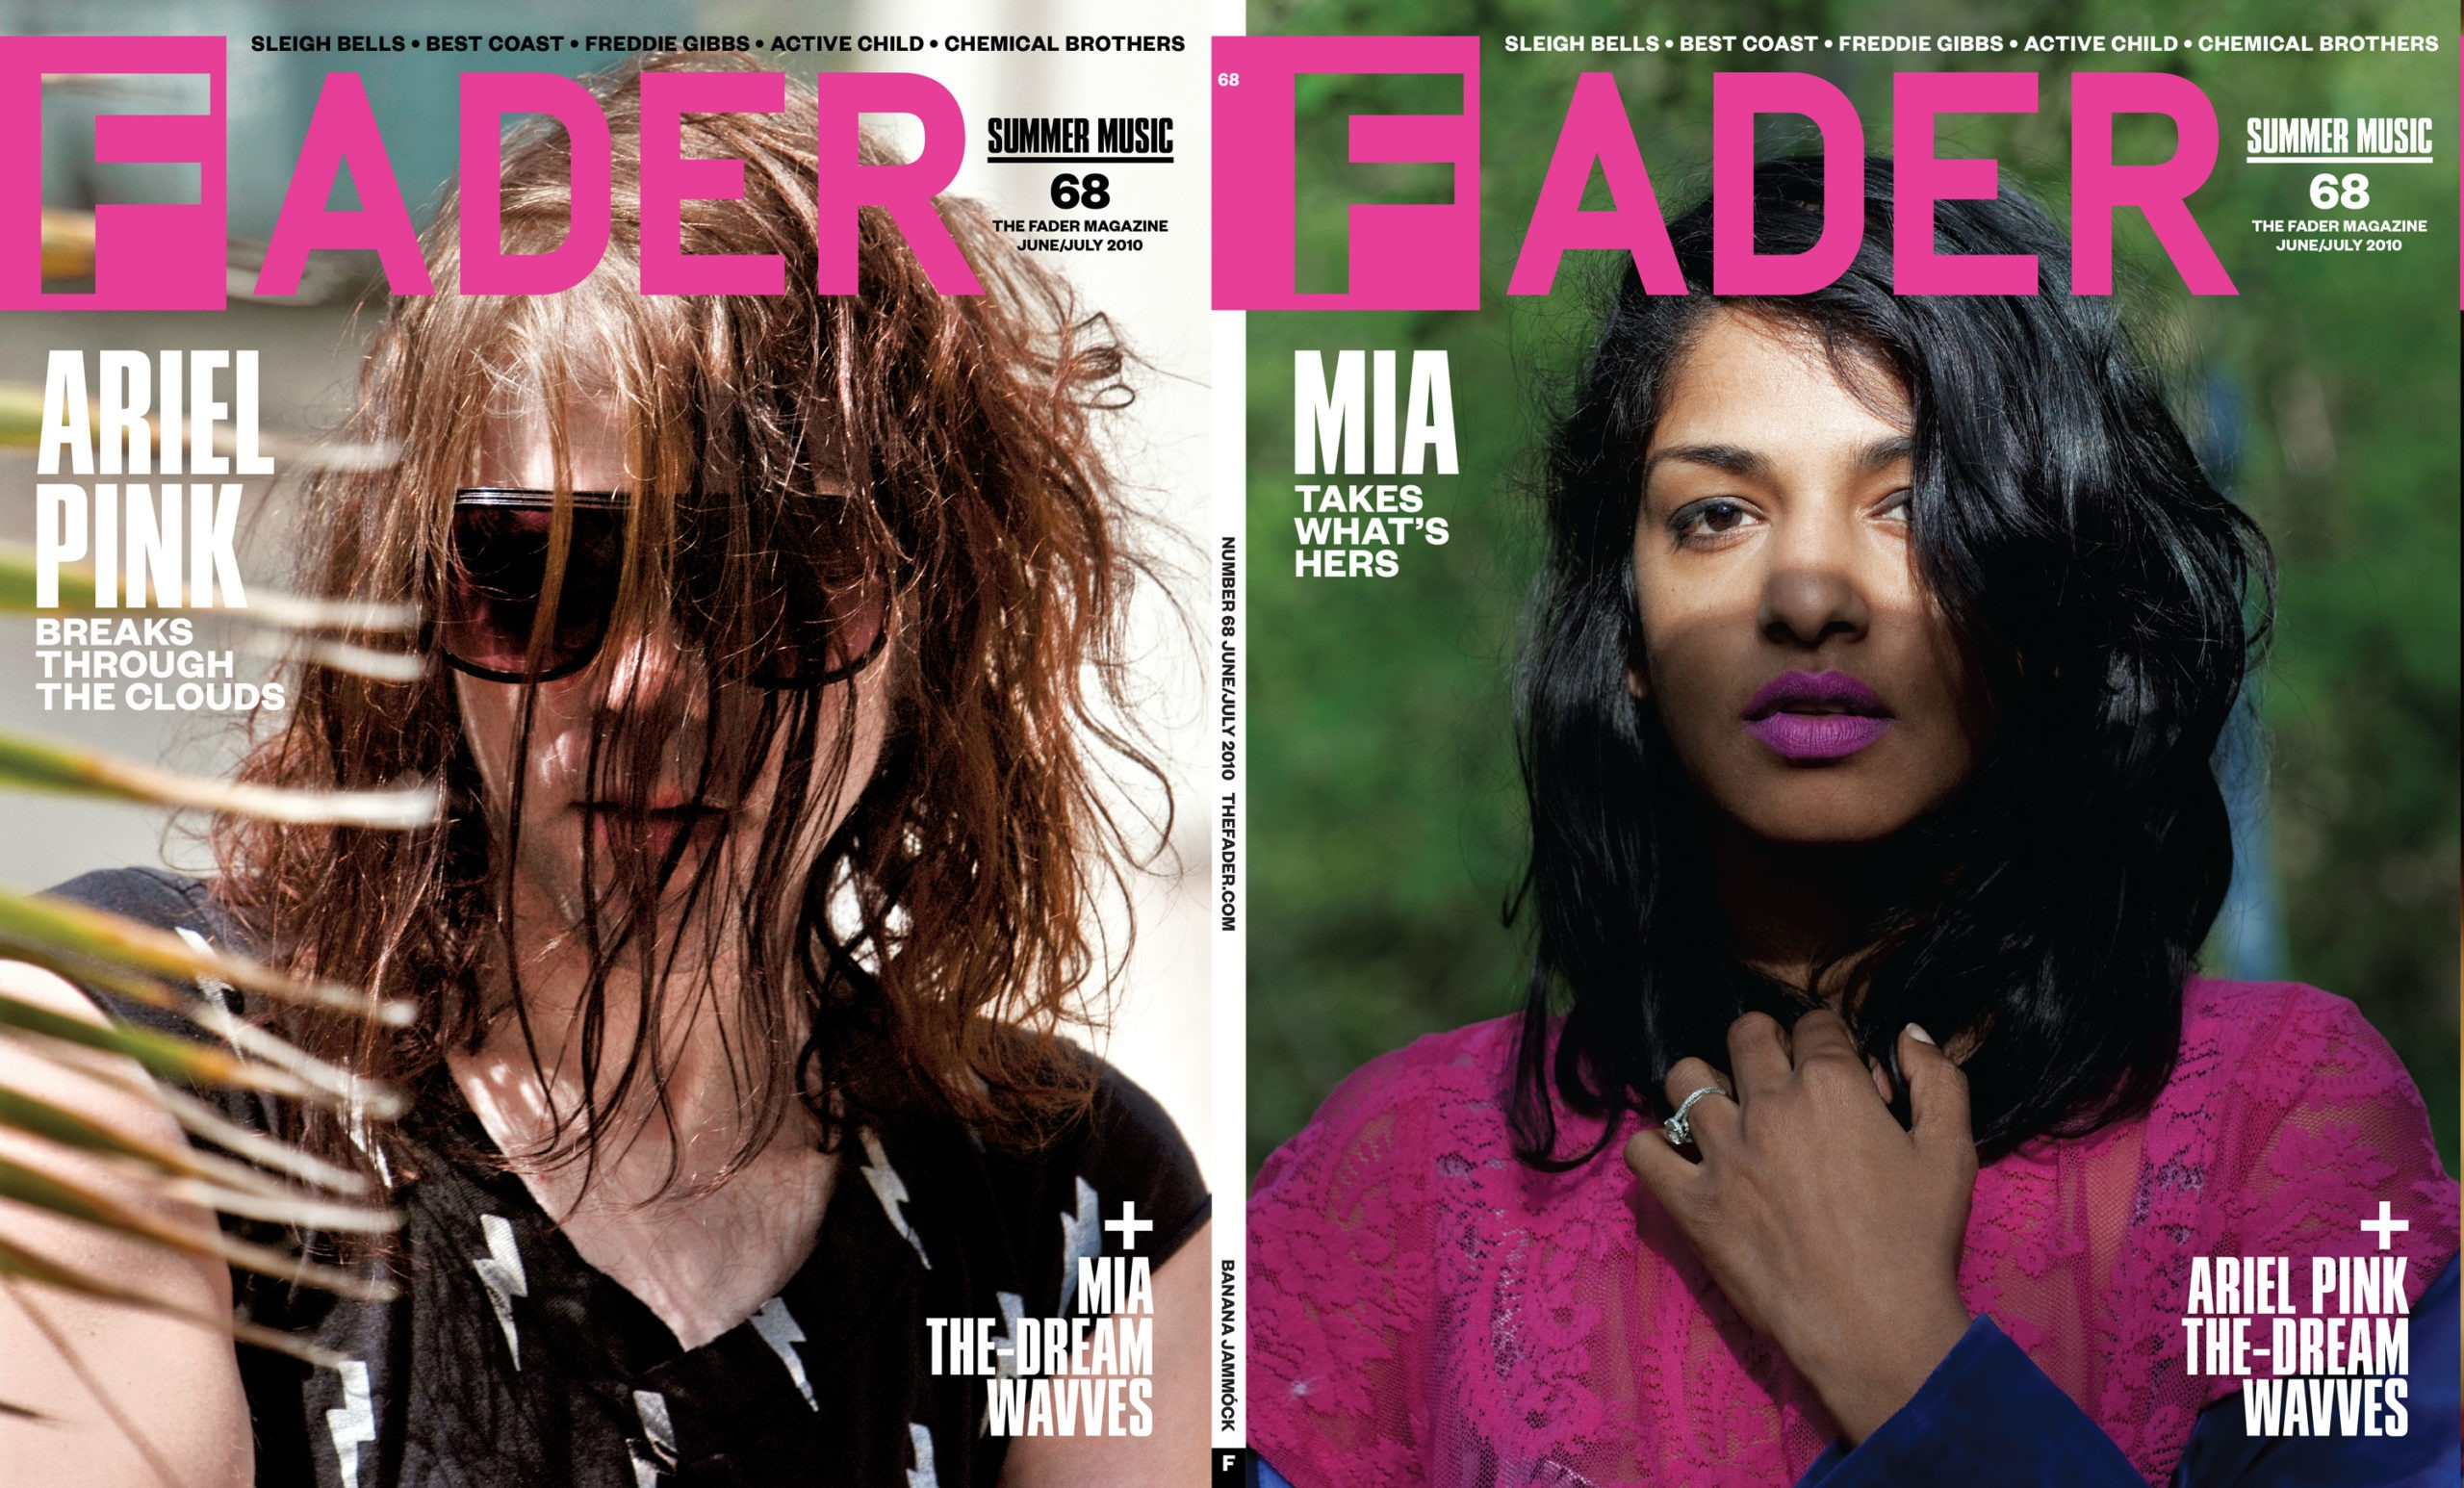 02_Cover41_Fader68